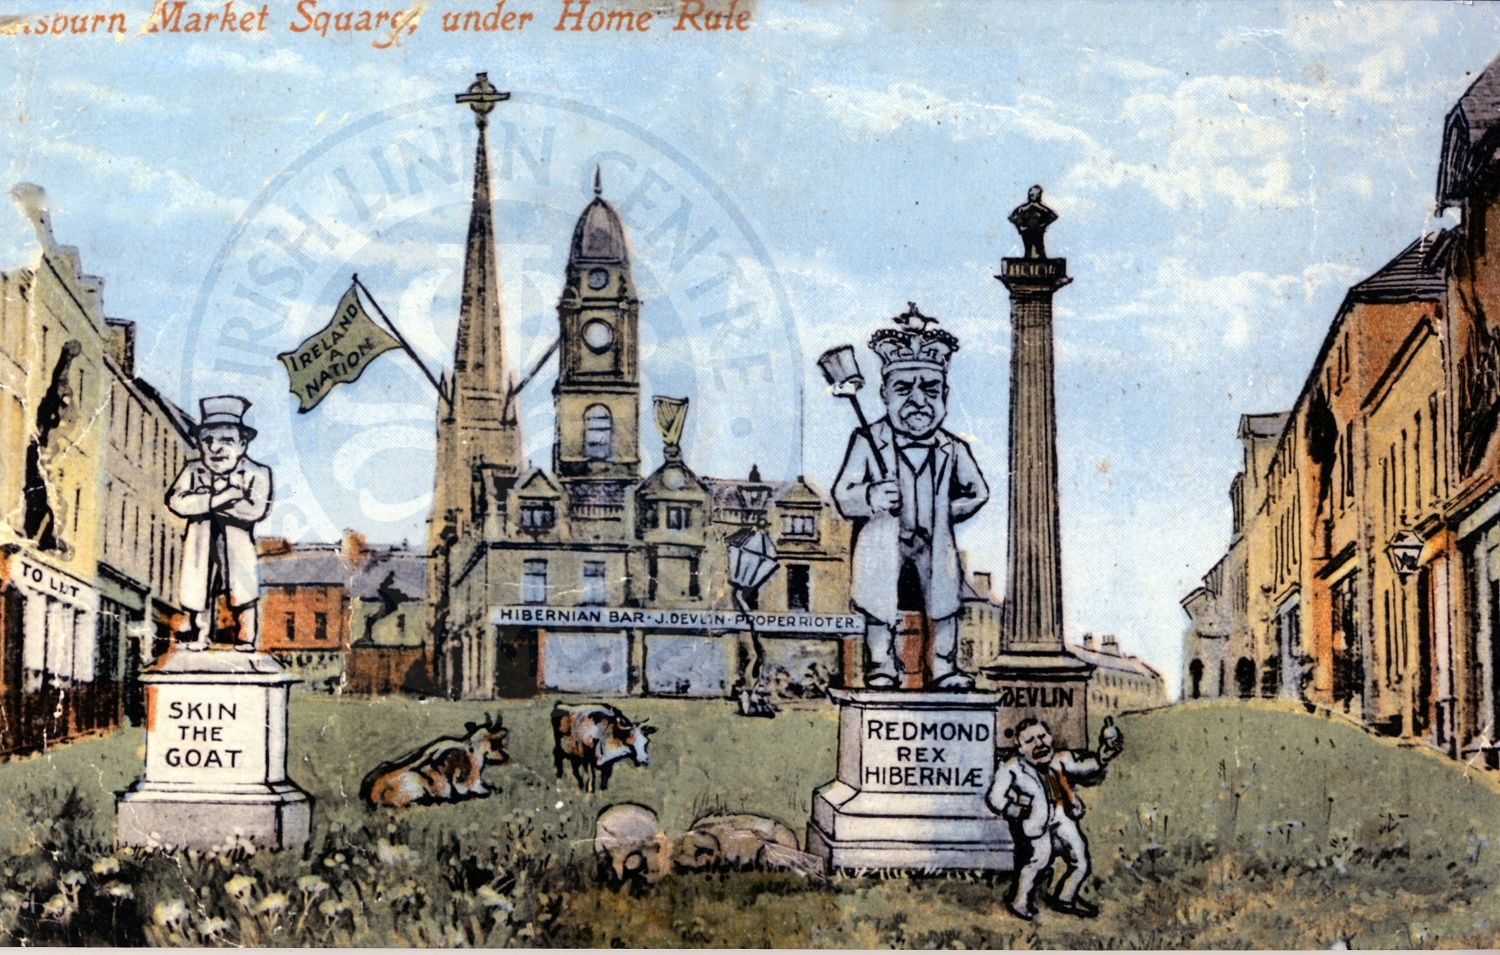 Postcard - Lisburn Under Home Rule - ILC&LM Collection